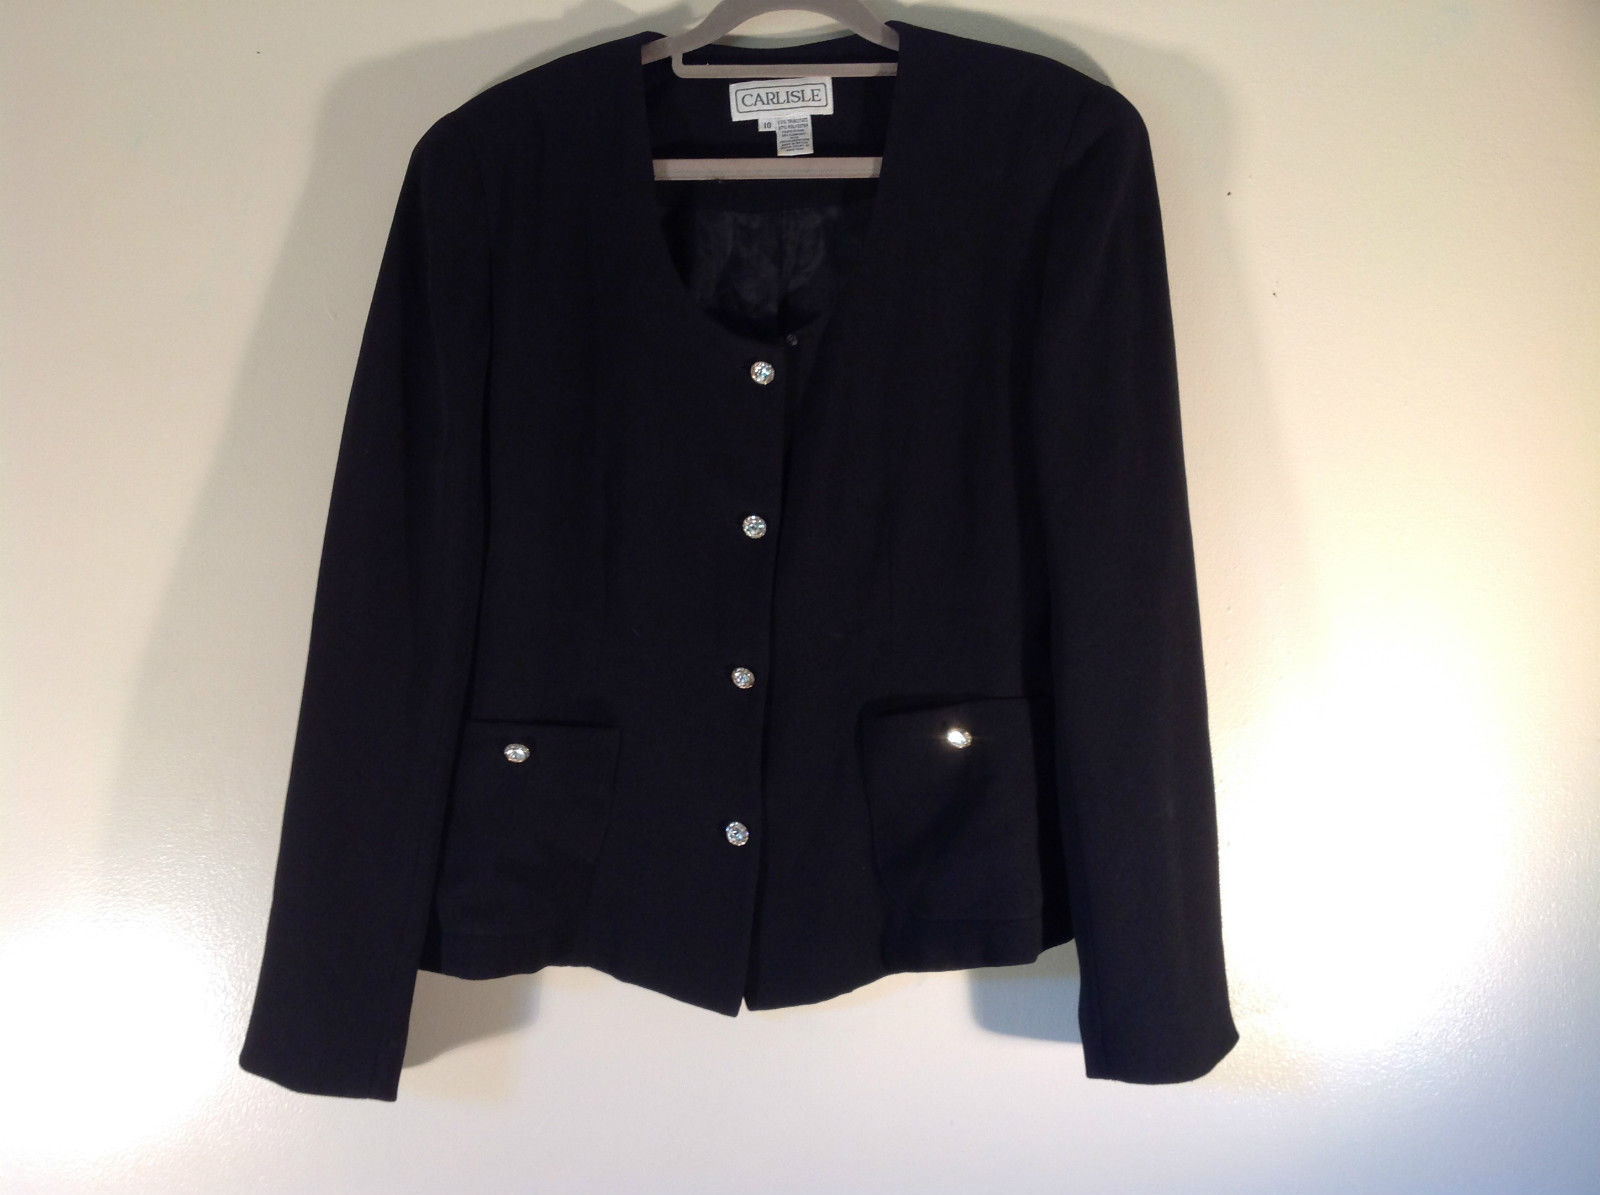 Carlisle Size 10 Scoop Neck Black Blazer Jacket 4 Button Closure 2 Front Pockets